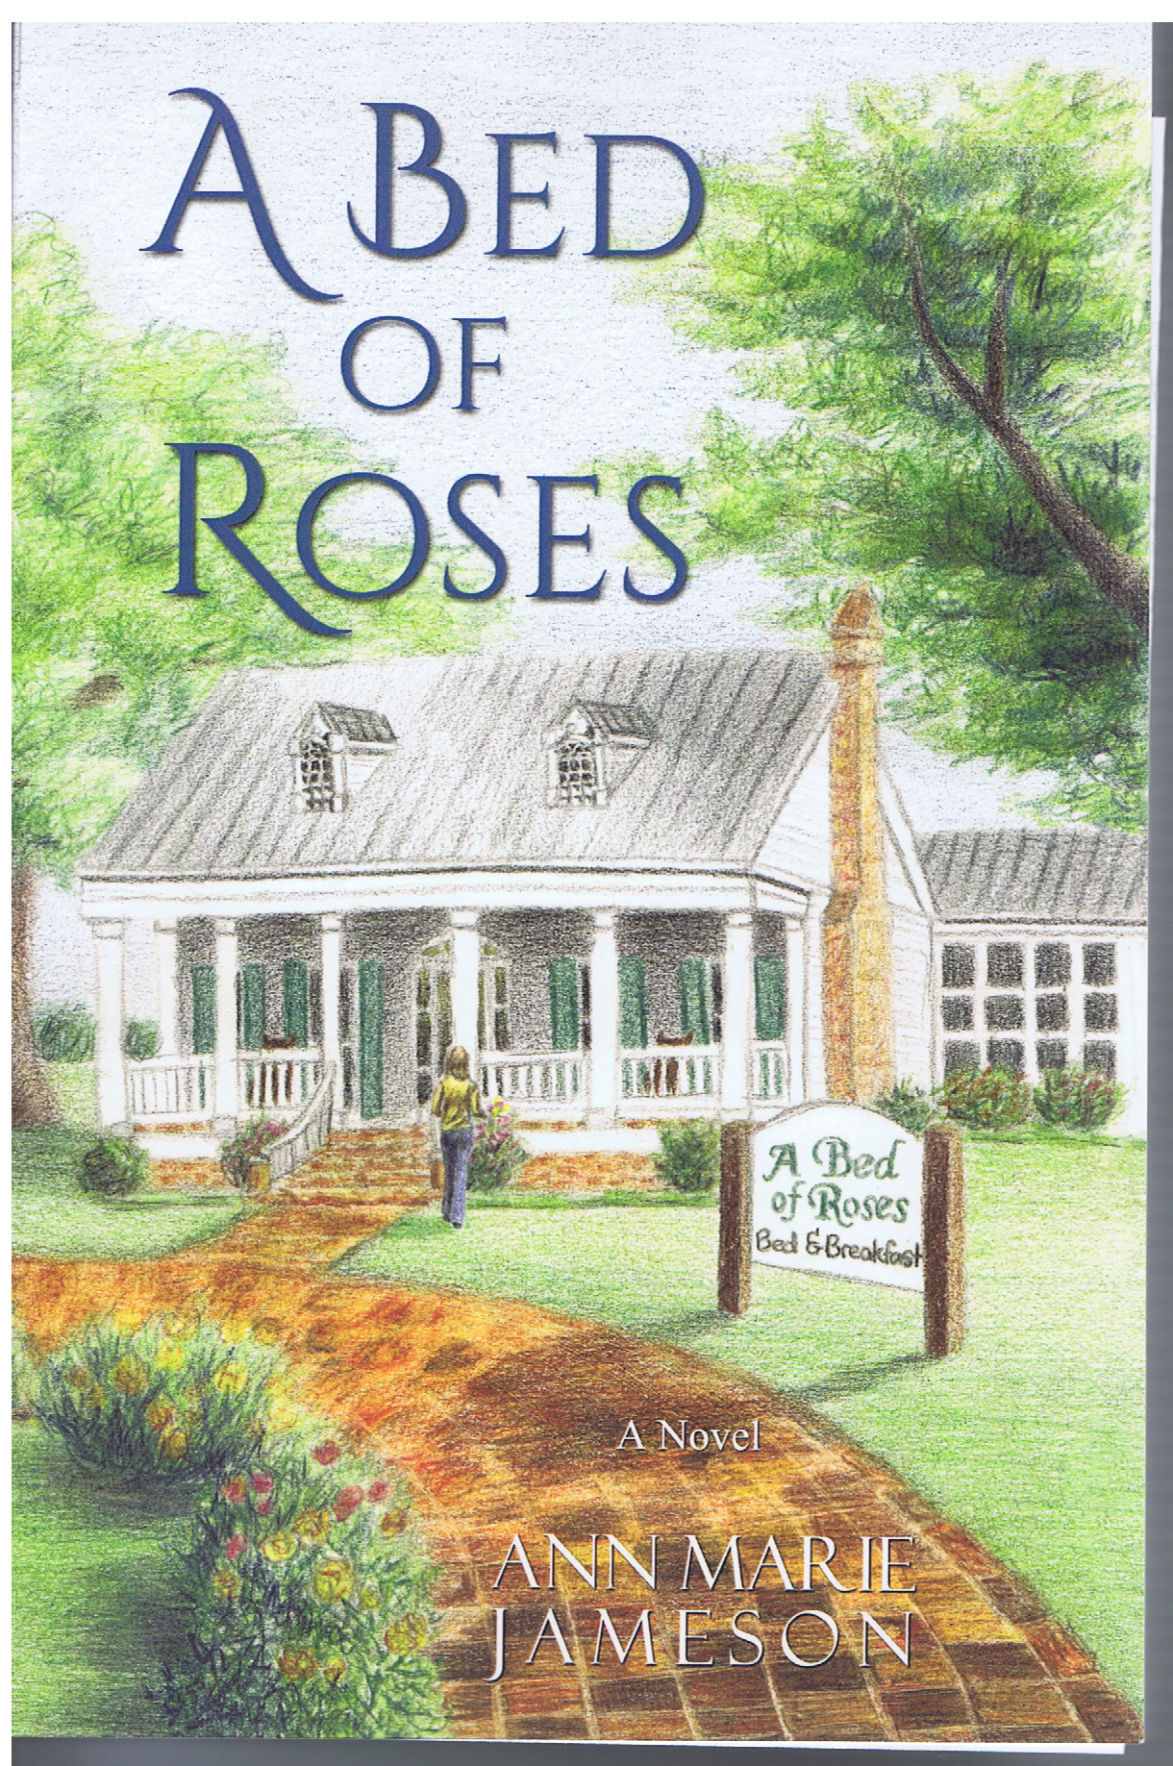 A Bed of Roses Cover copy.jpg (group)